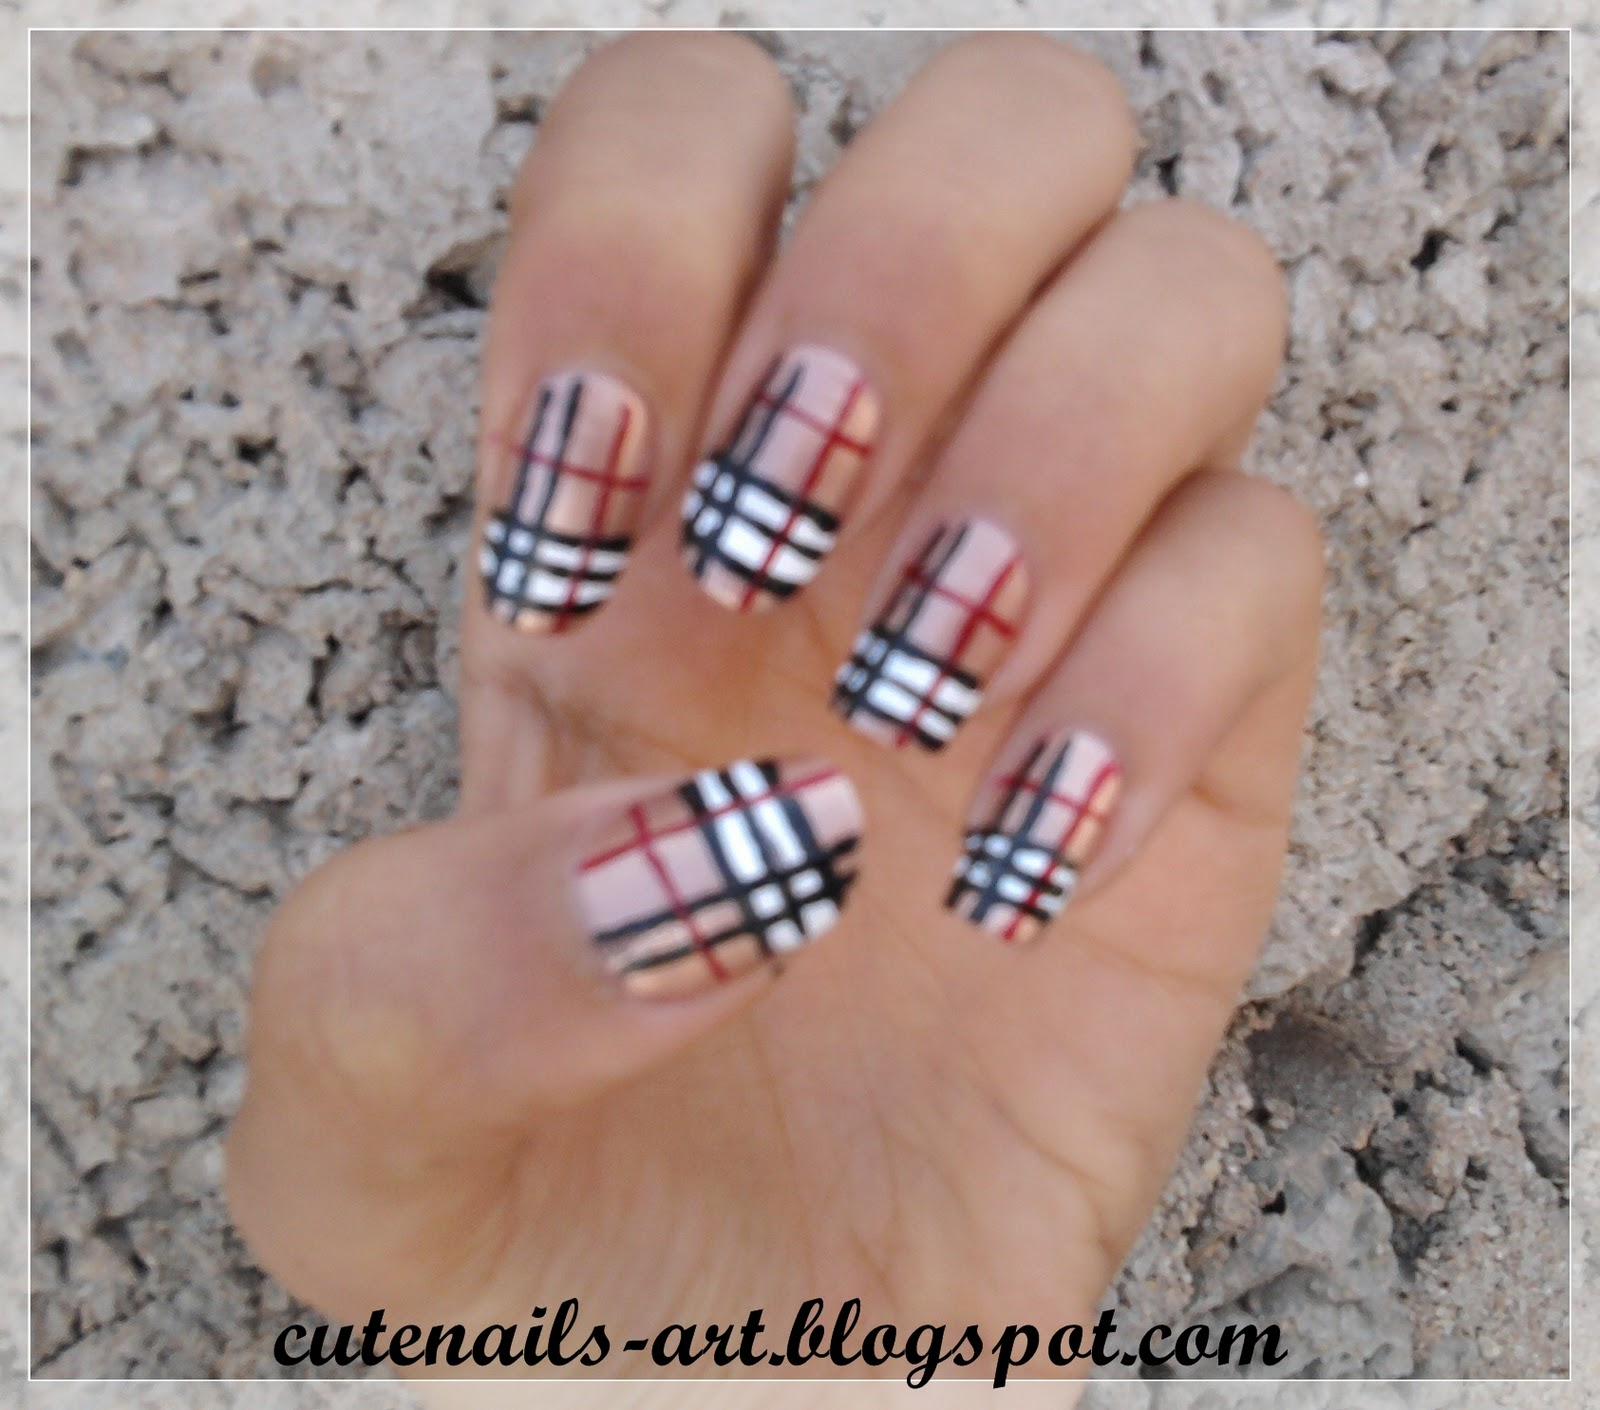 Prettyfulz Fall Nail Art Design 2011: Cutenails-art: Burberry/fall Colors Nails